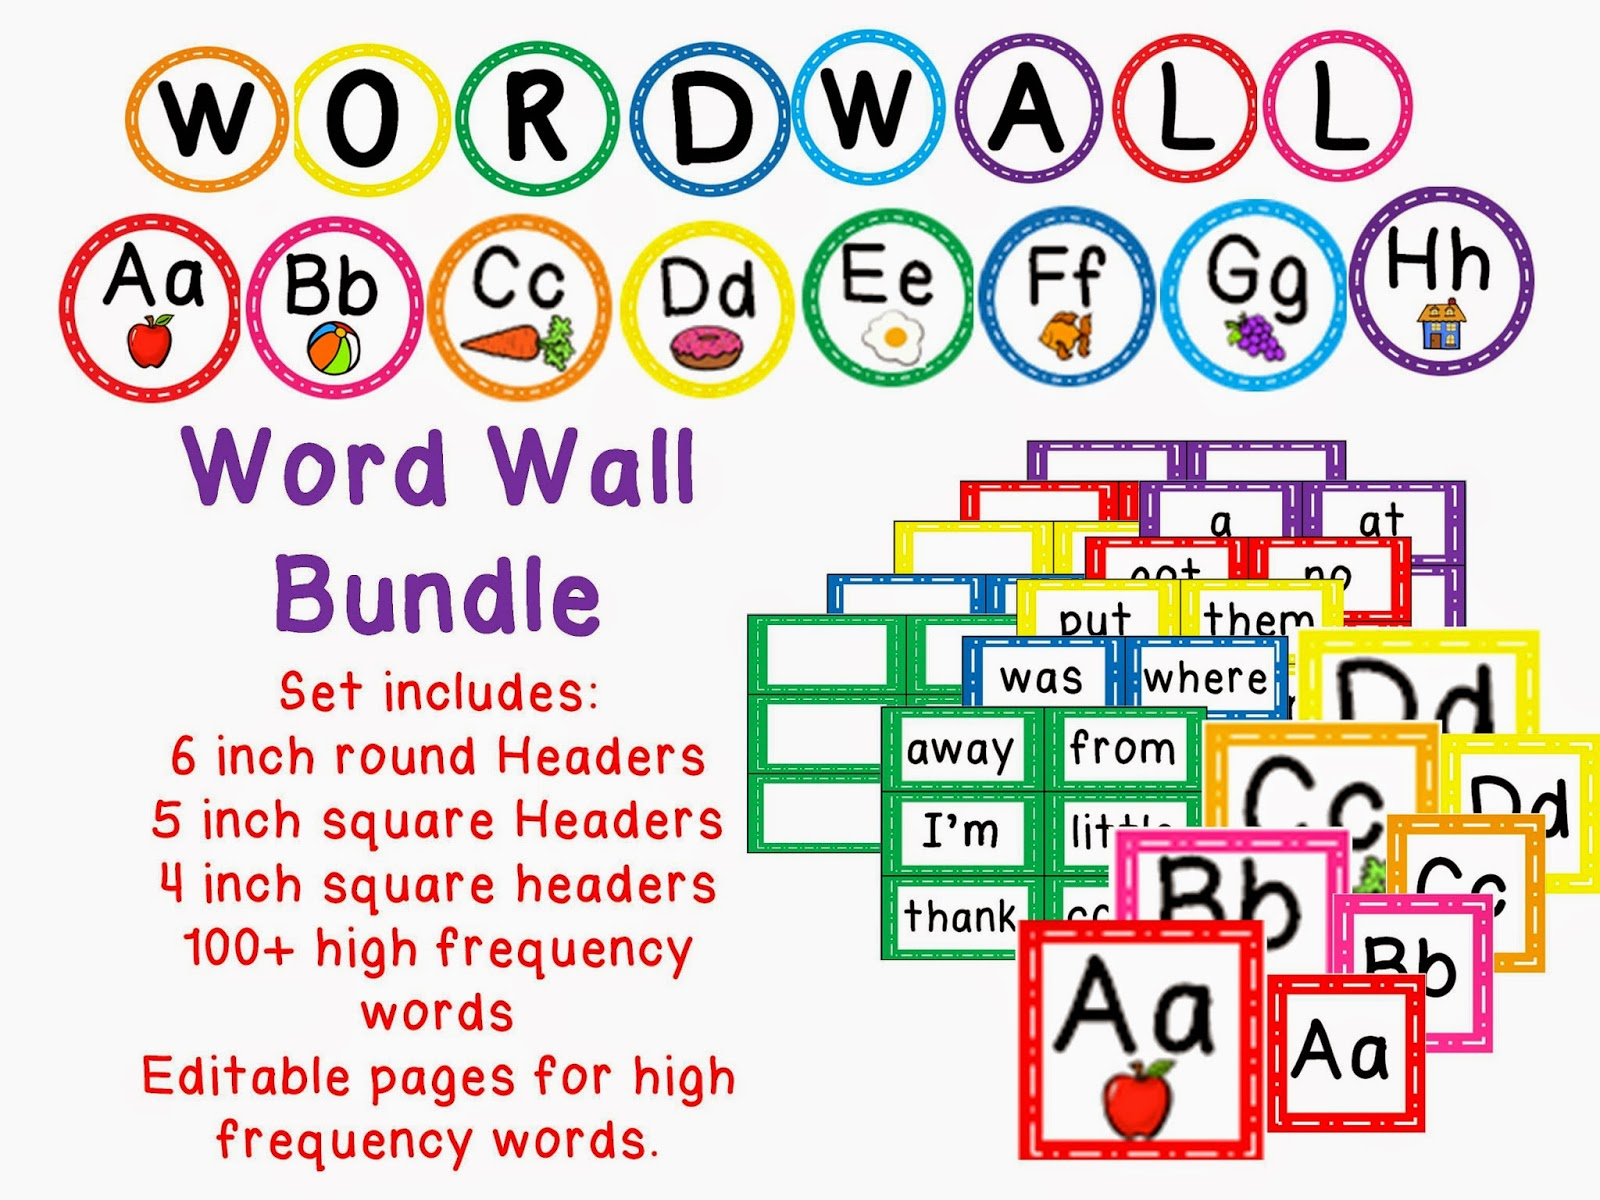 https://www.teacherspayteachers.com/Product/Word-Wall-Bundle-with-heading-label-variety-of-headers-100-words-editable-751845